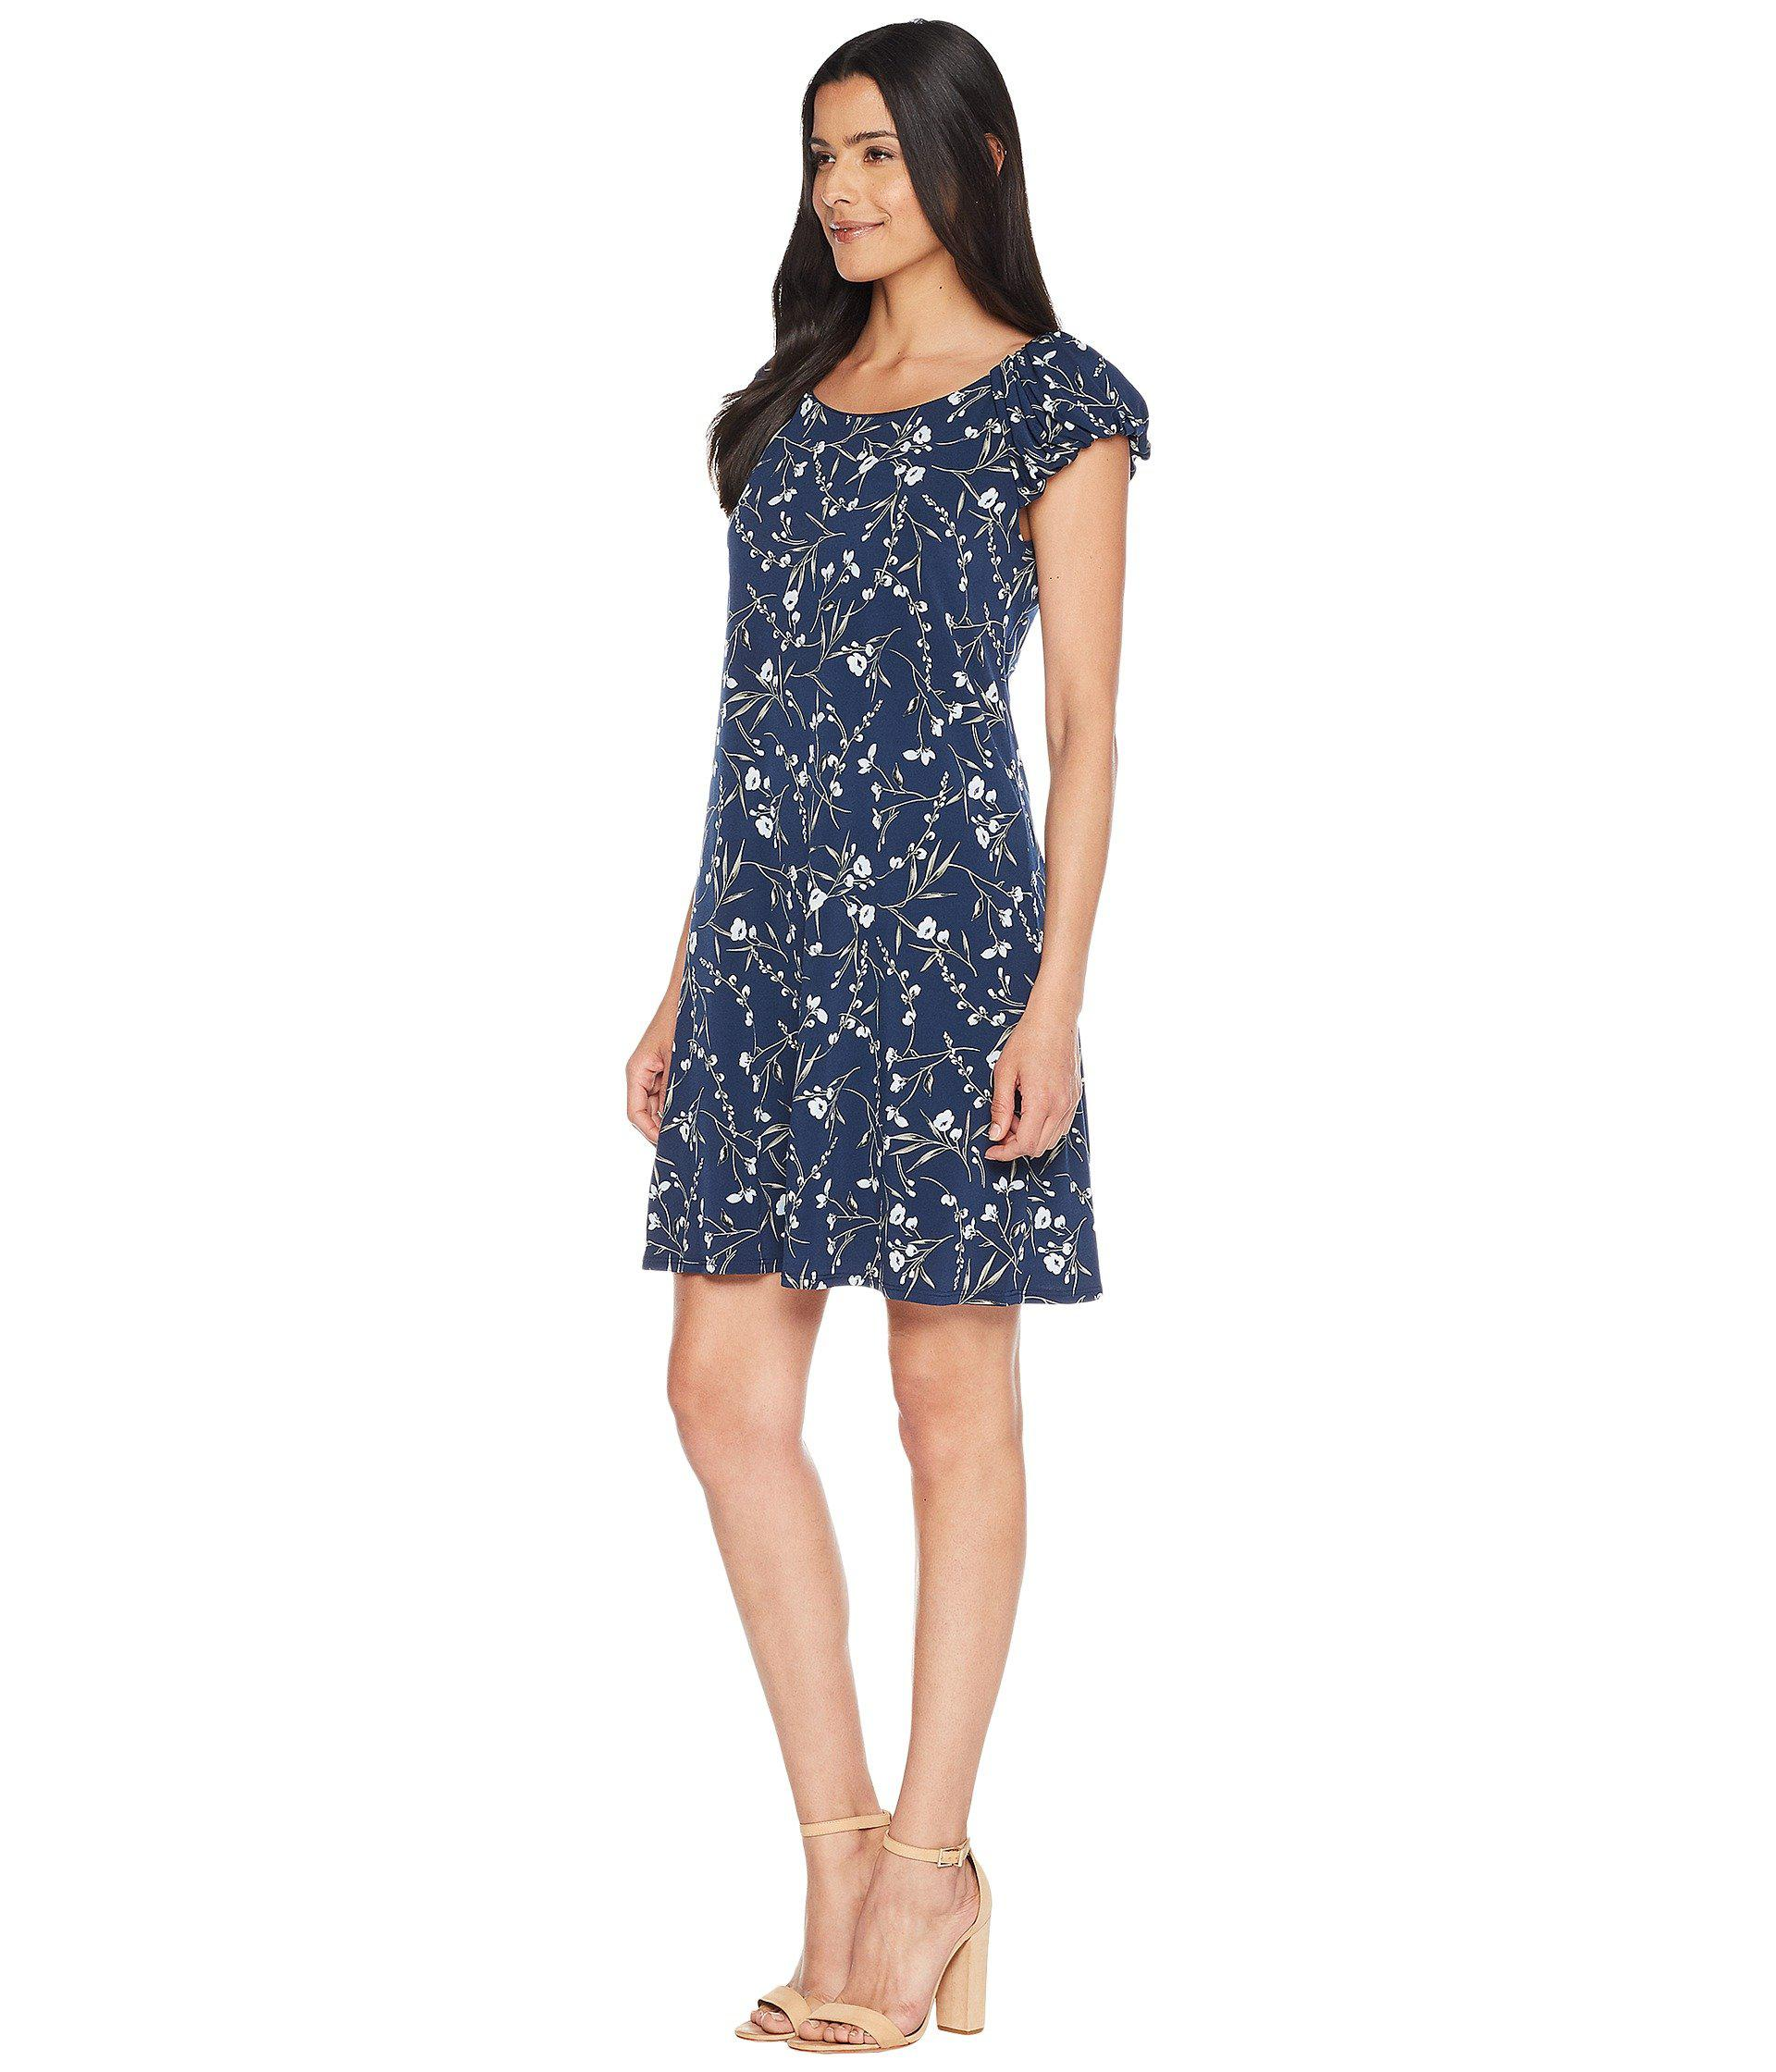 91053a53c Lyst - Cece Puffed Sleeve Graceful Floral Knit Dress in Blue - Save  55.38461538461539%